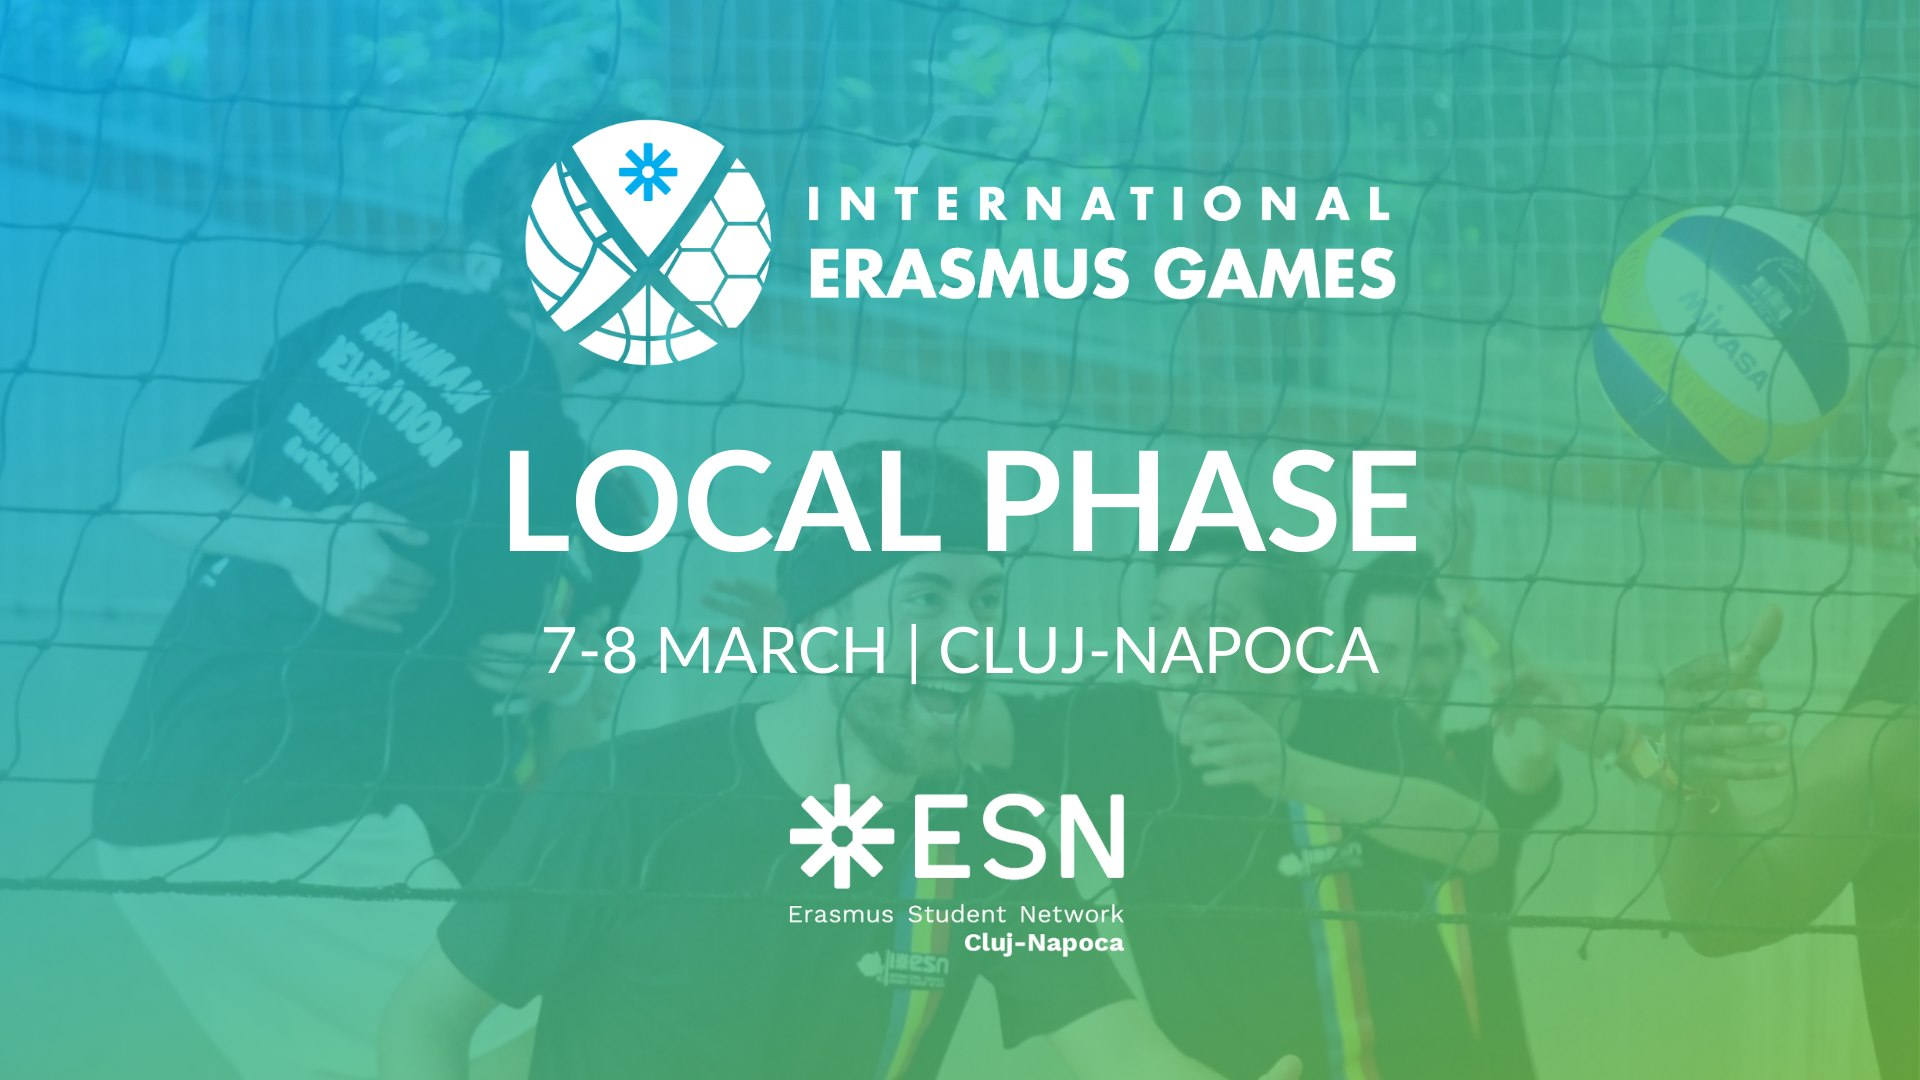 International Erasmus Games (IEG) 2020 – Local Phase Cluj-Napoca